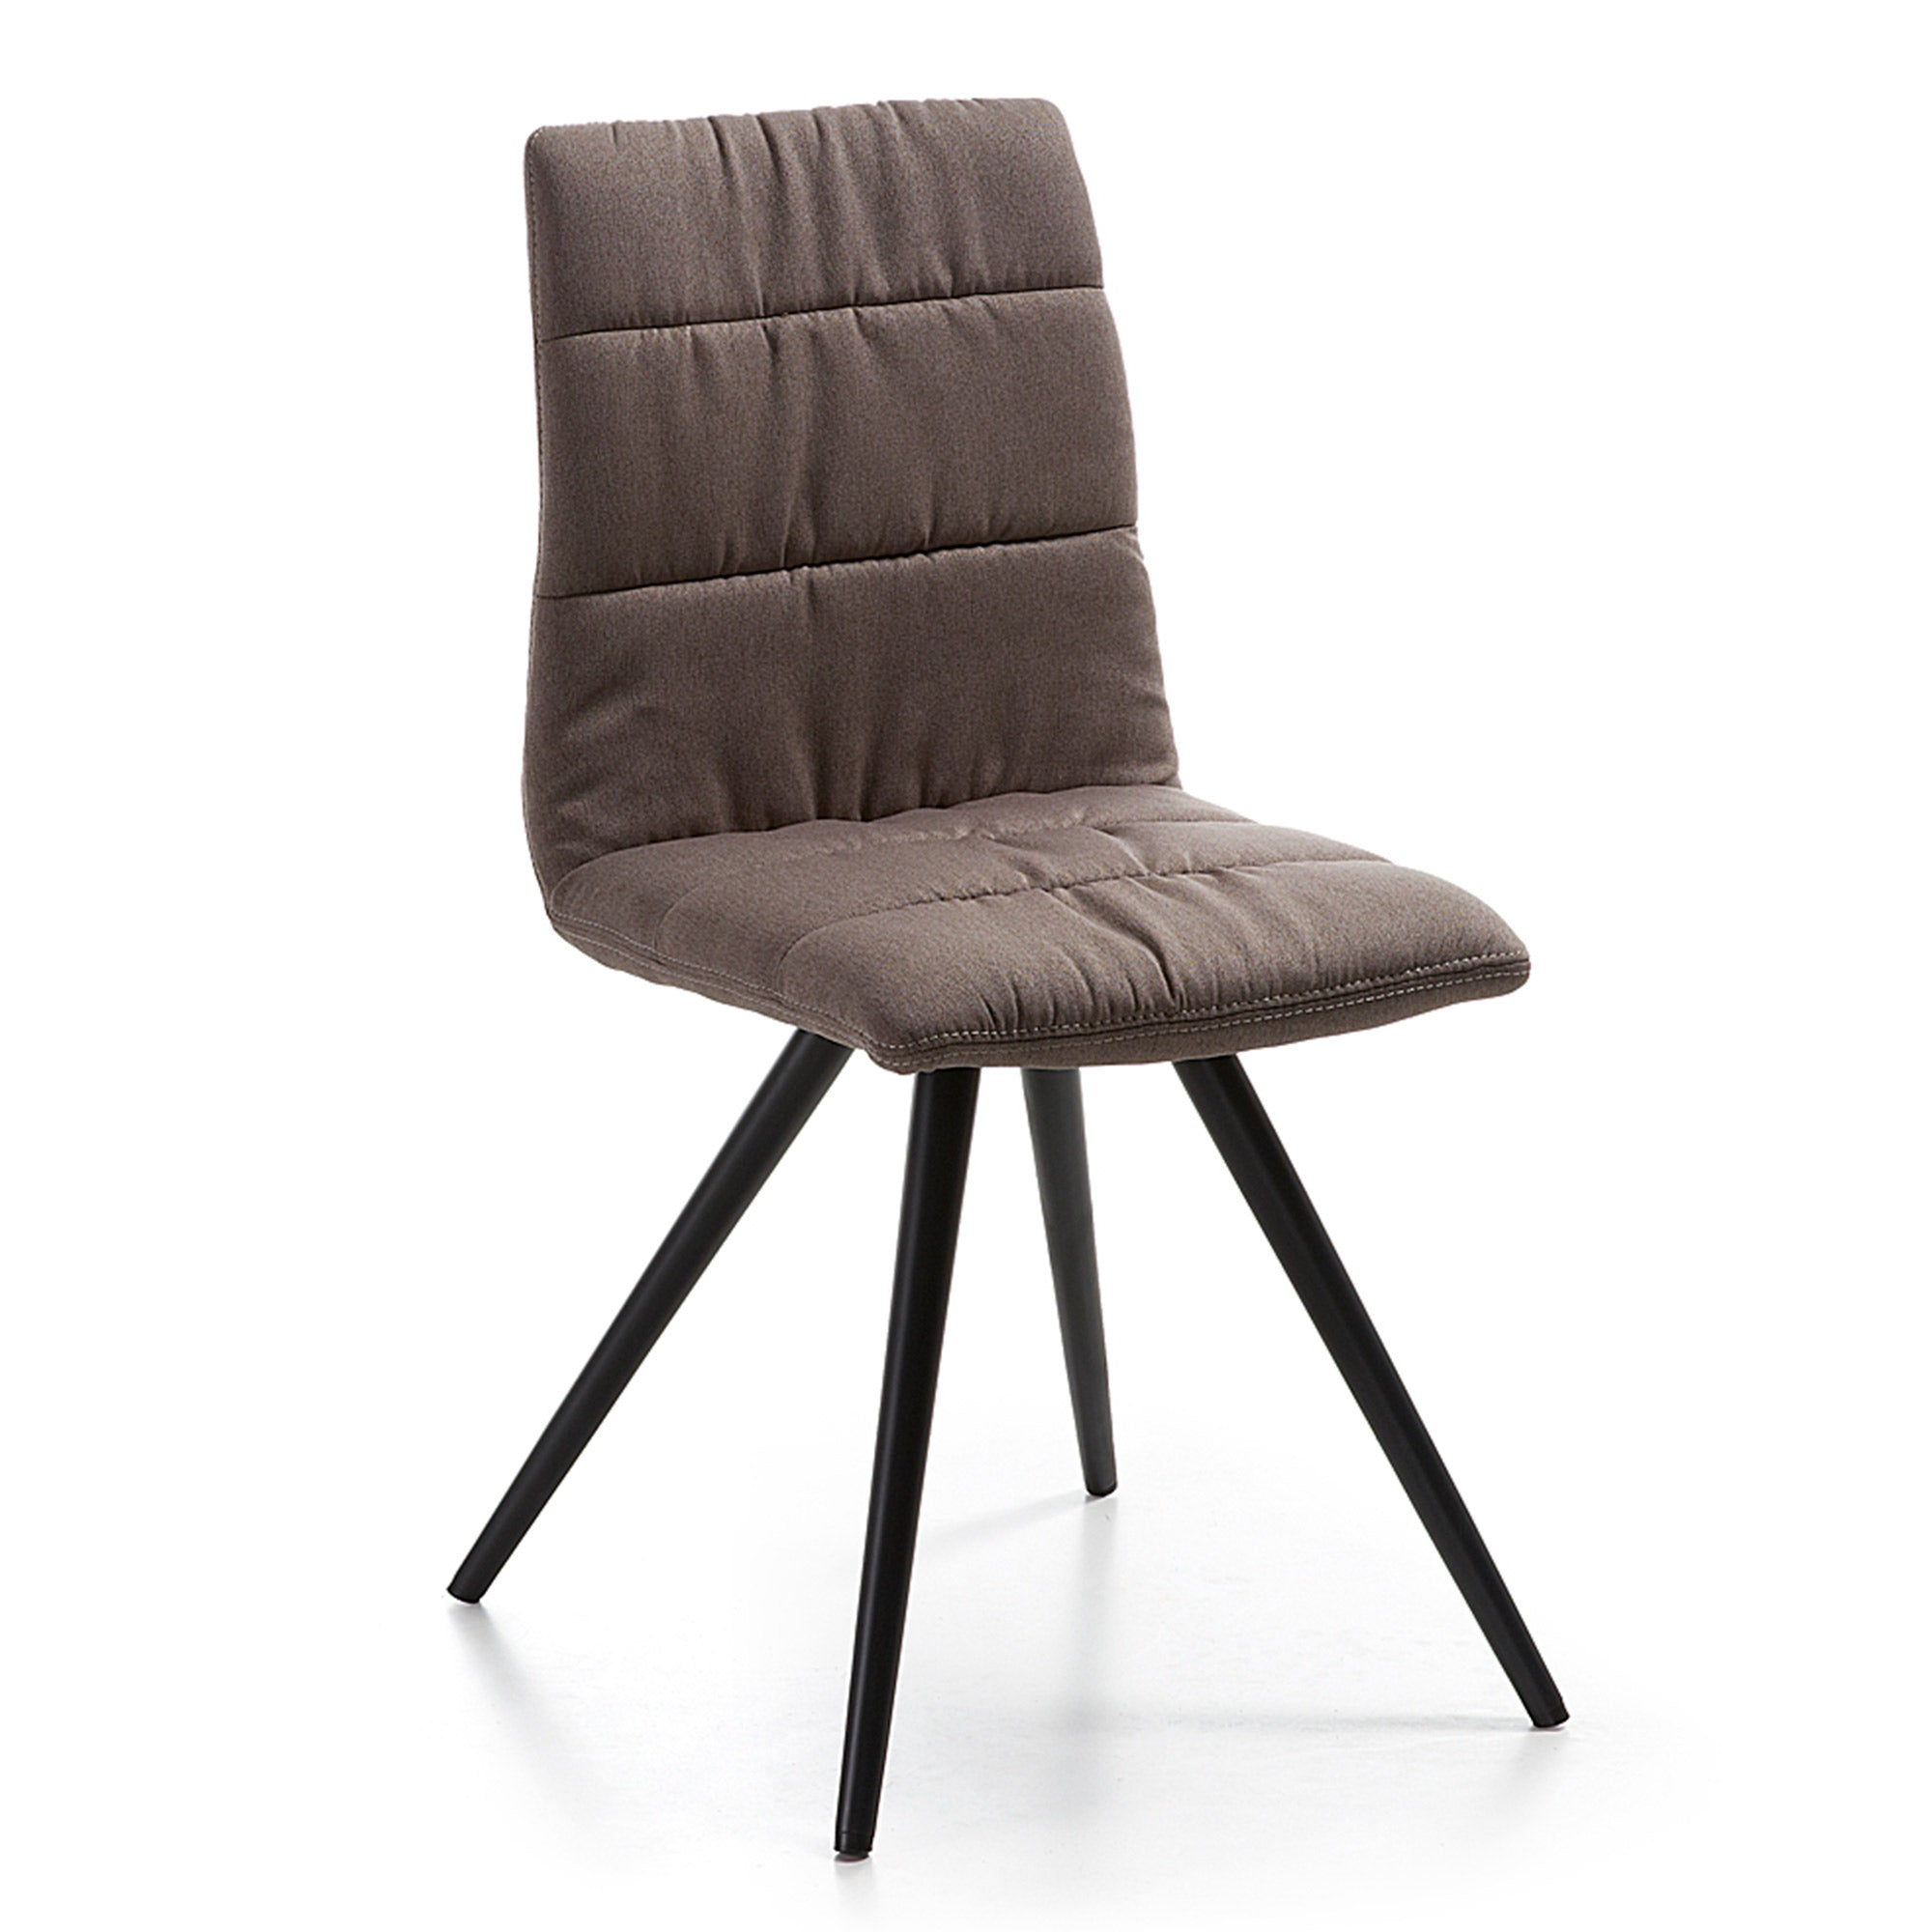 Aubrey Chair - Dark Brown Fabric, Chair - Home-Buy Interiors